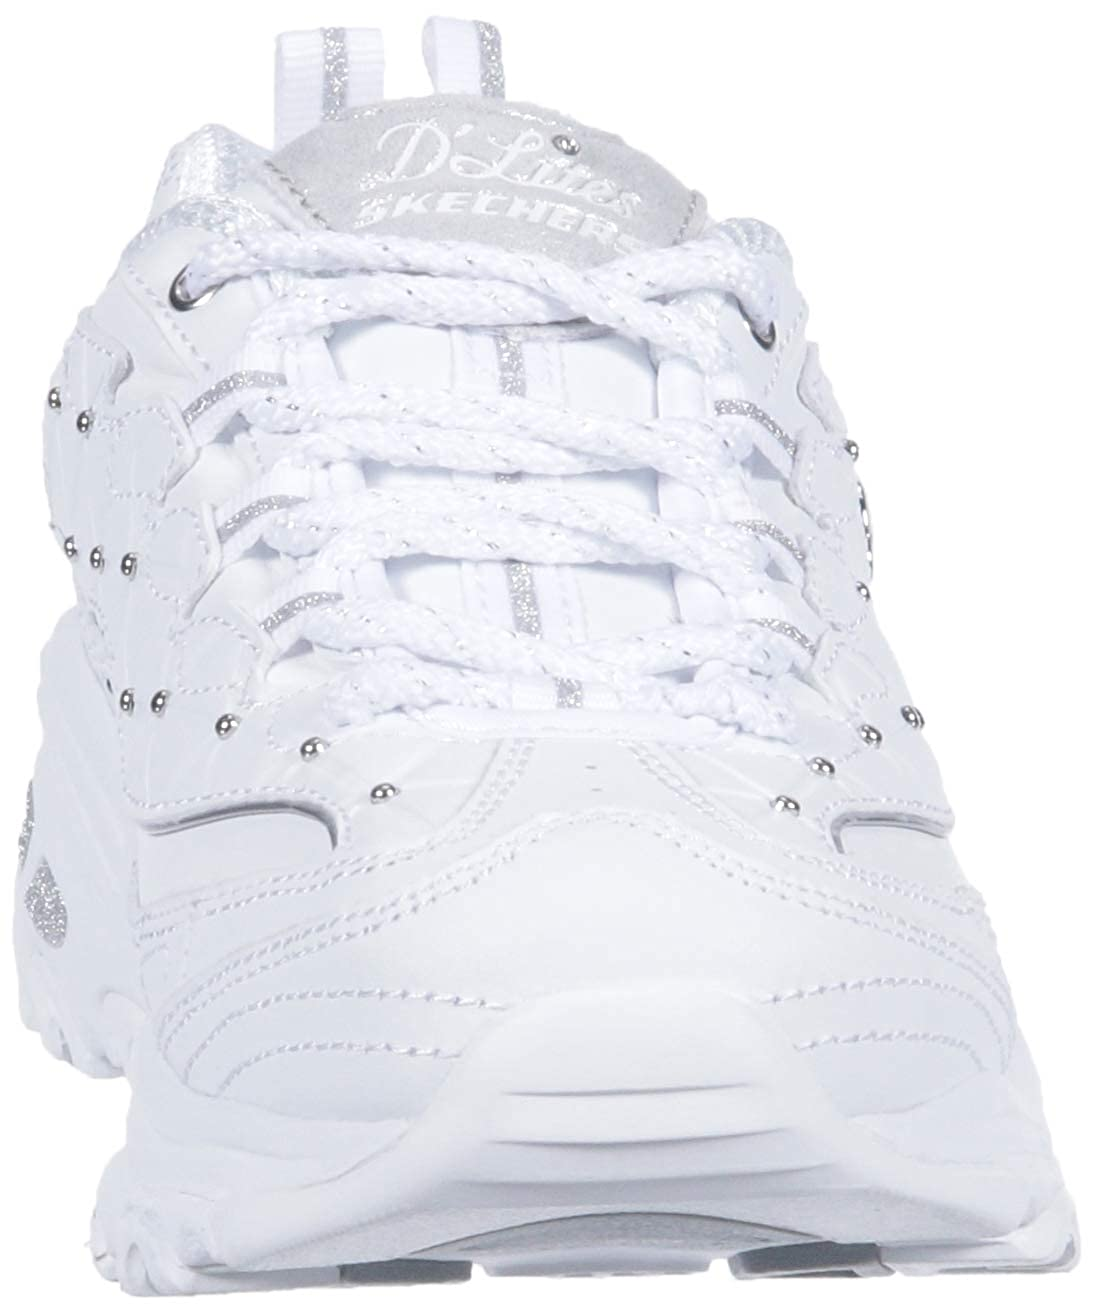 Skechers-D-039-Lites-Women-039-s-Casual-Lightweight-Fashion-Sneakers-Athletic-Shoes thumbnail 72